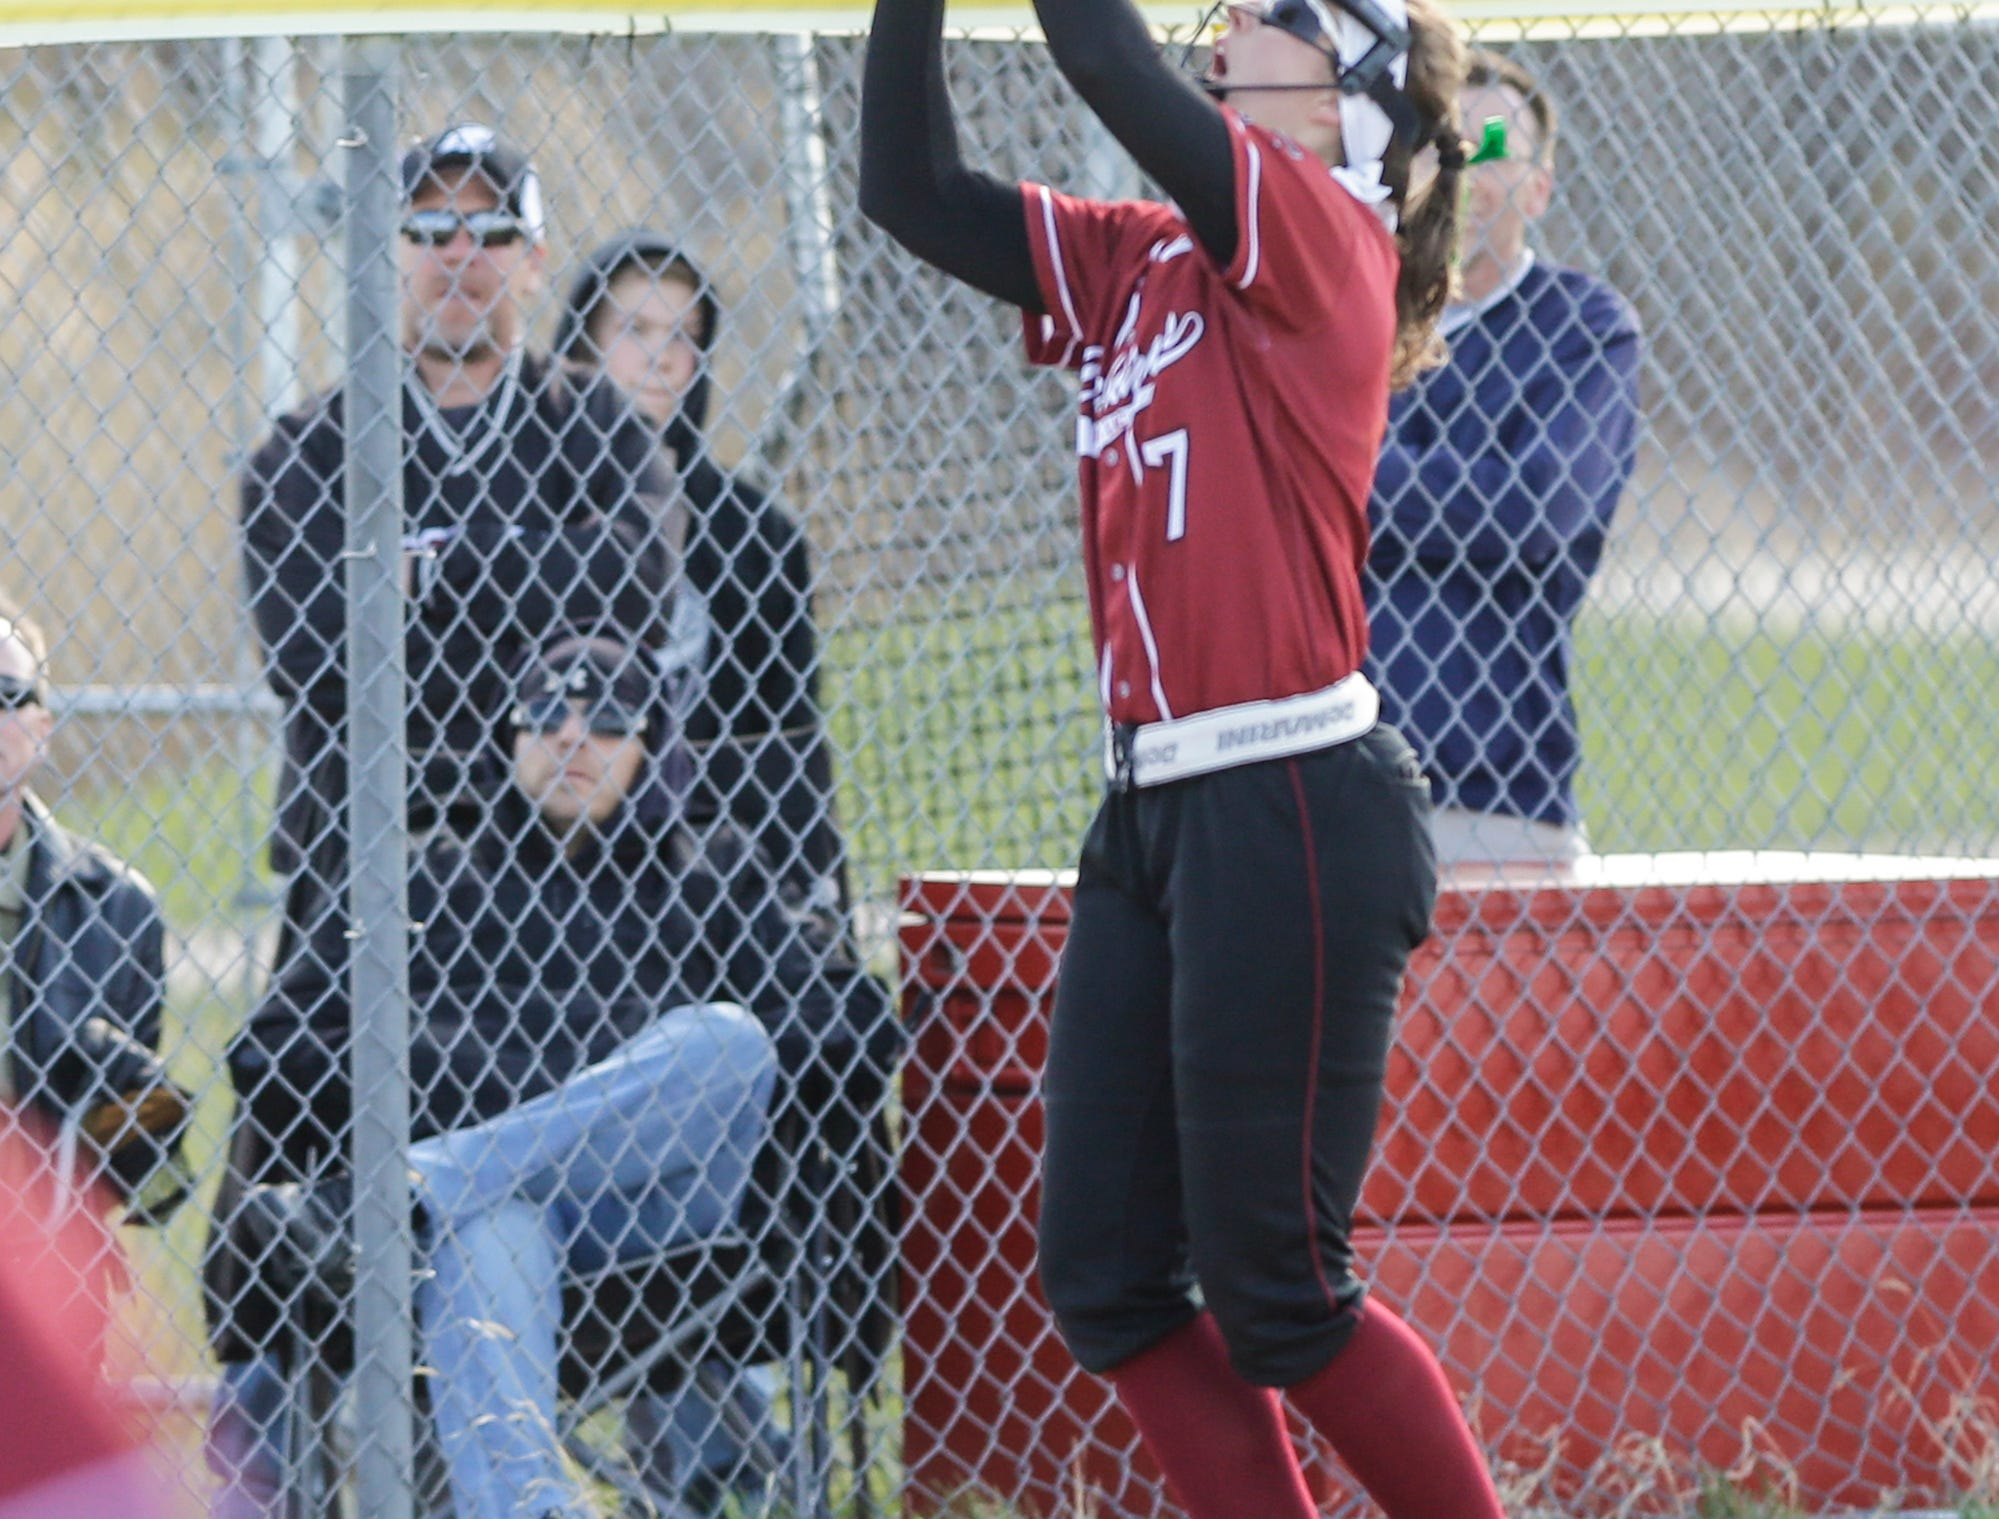 Fond du Lac High School softball's Kali Smit catches a pop up foul ball against Oshkosh North High School during their game Friday, April 26, 2019 in Fond du Lac, Wis. Doug Raflik/USA TODAY NETWORK-Wisconsin